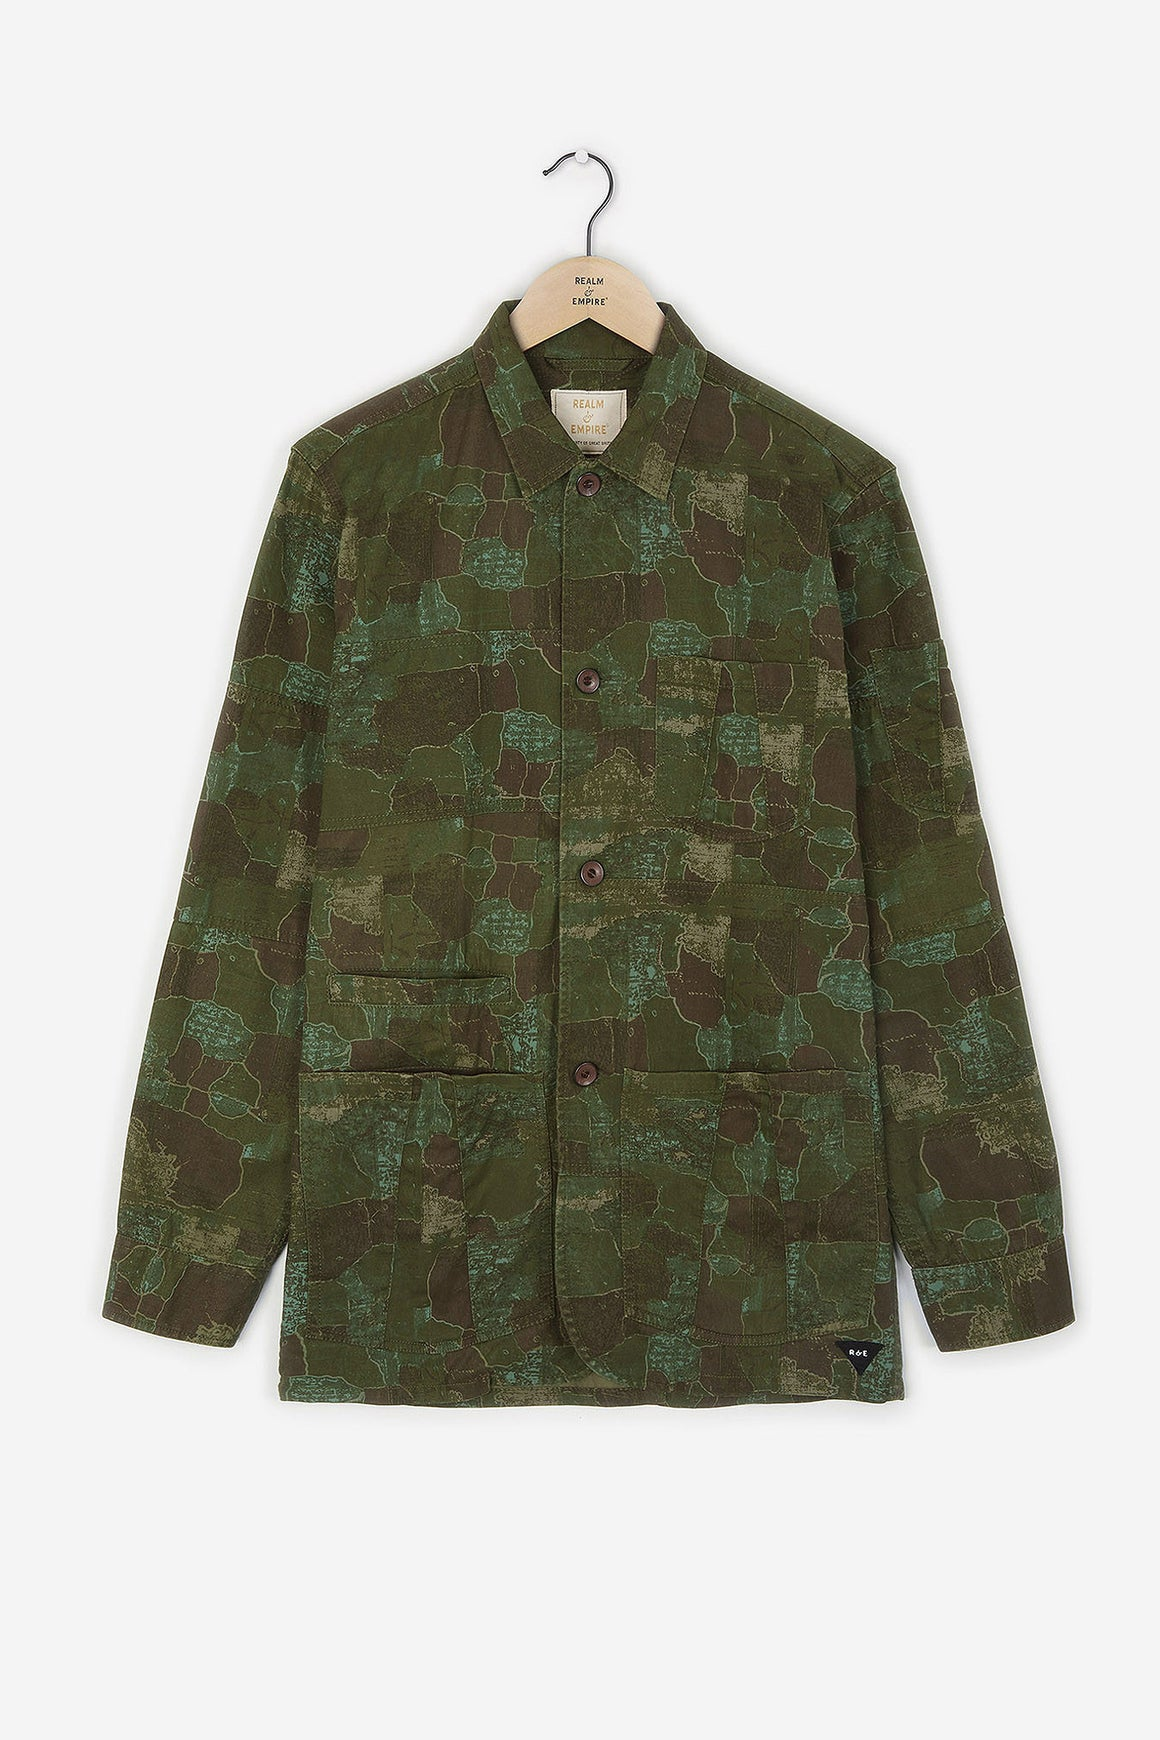 Realm & Empire Combat Jacket | Camo Green